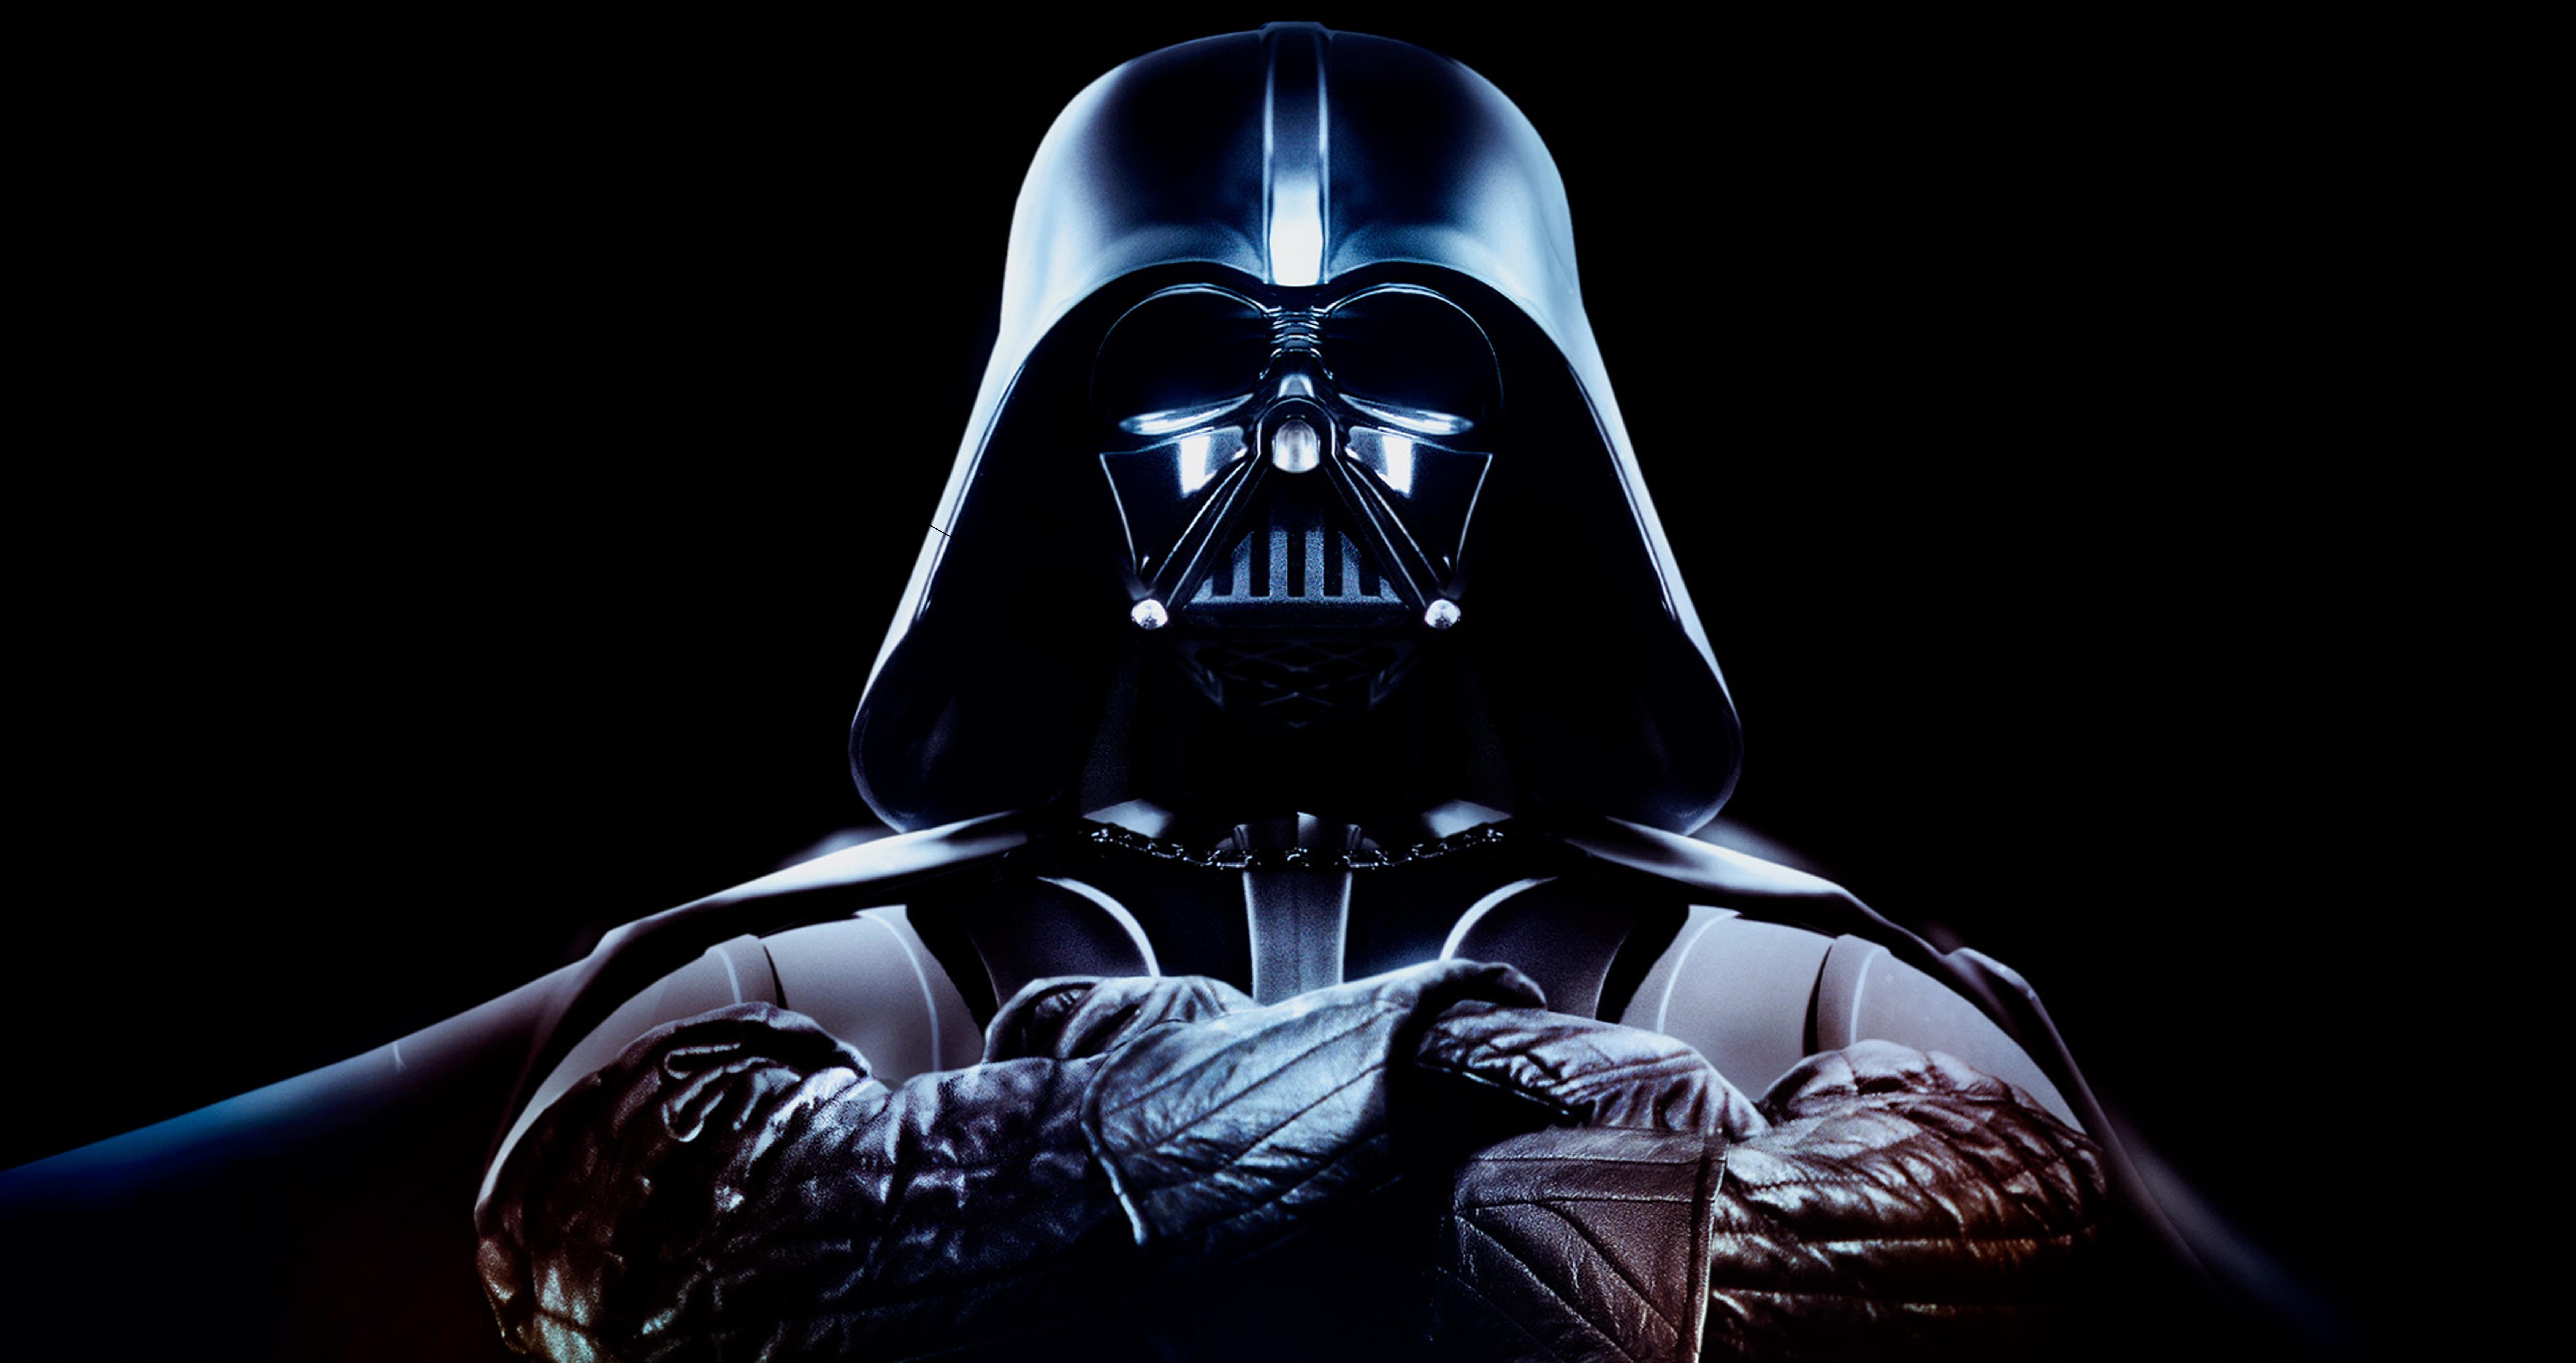 Vader 4k Wallpapers For Your Desktop Or Mobile Screen Free And Easy To Download